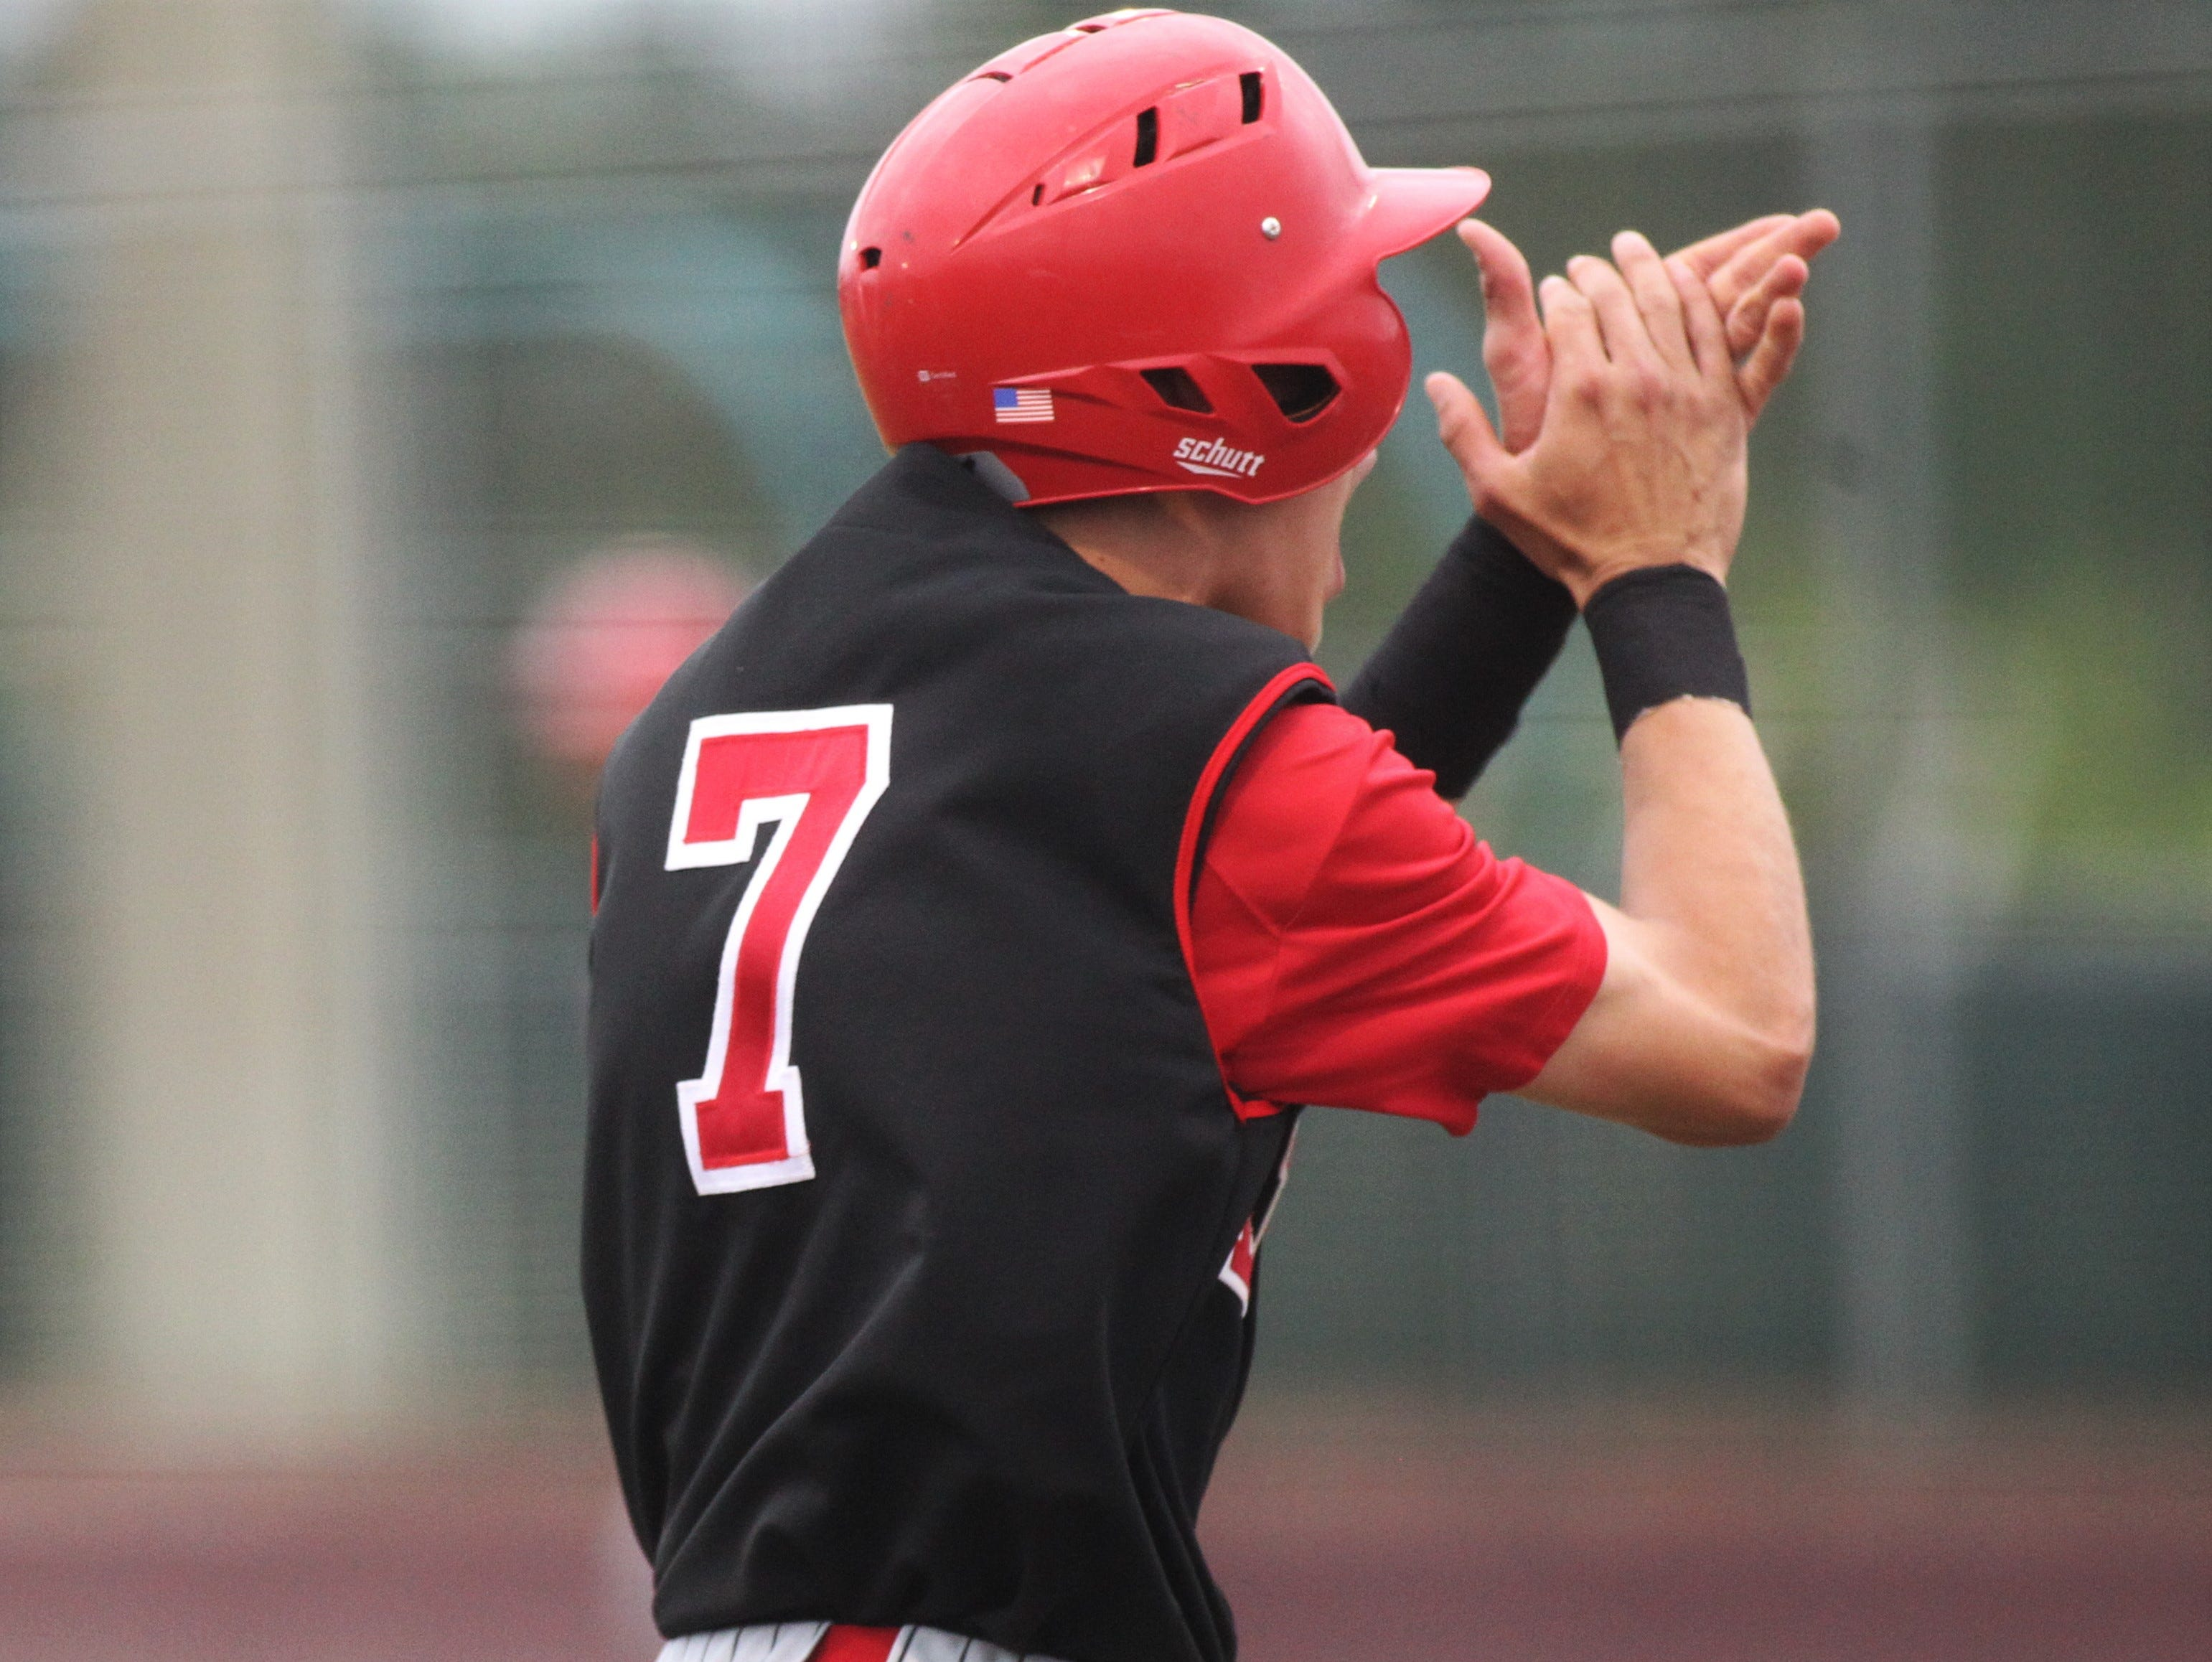 Leon senior True Fontenot claps while scoring a run, but Chiles won an 11-6 home game against Leon on Friday, April 5, 2019, to force a season split. The Lions won 3-0 earlier in the week.